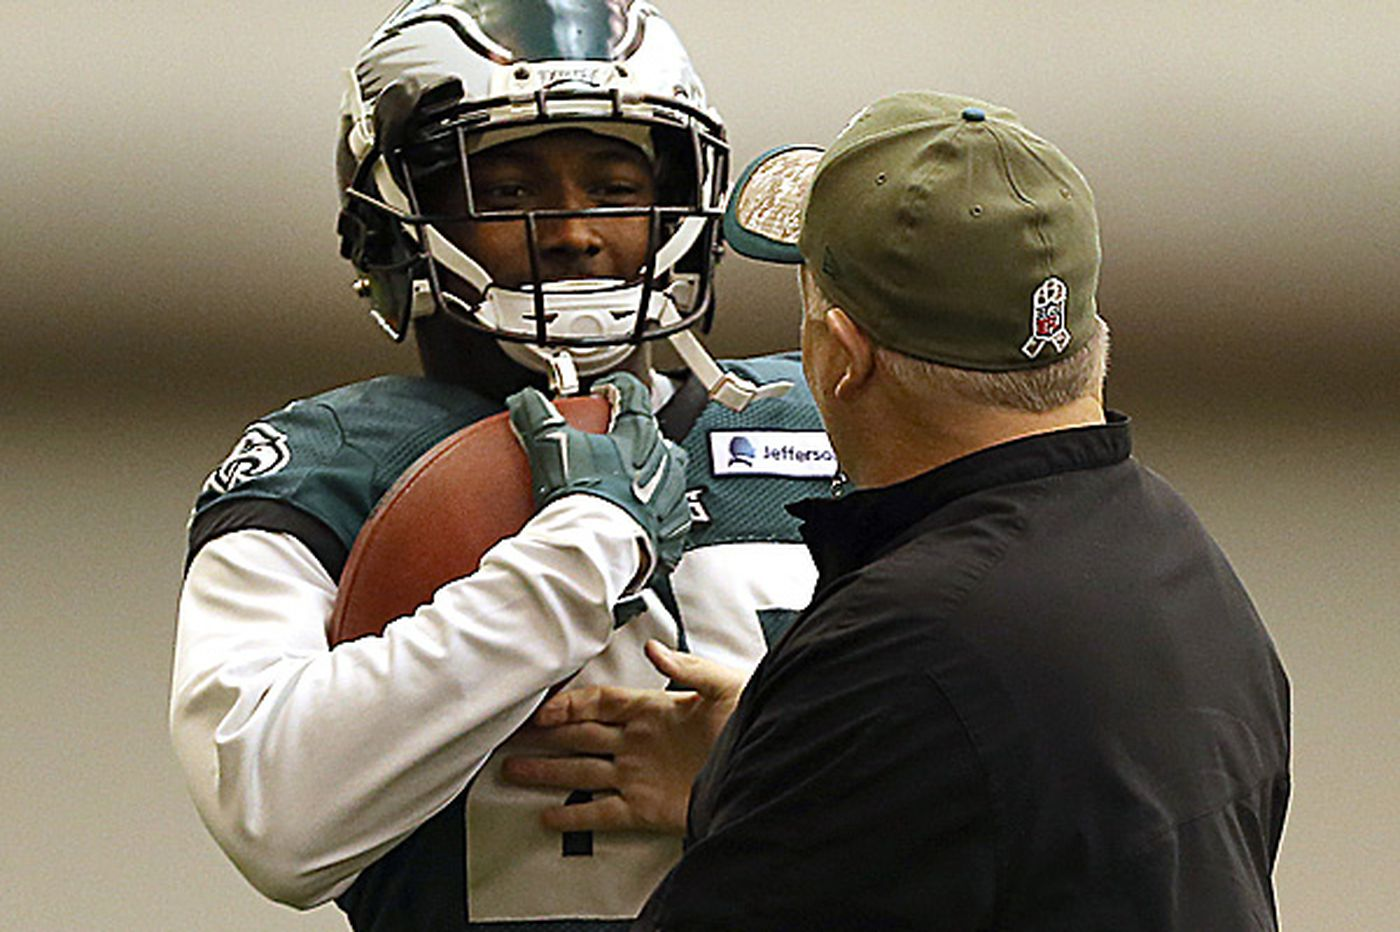 LeSean McCoy says Chip Kelly doesn't respect stars